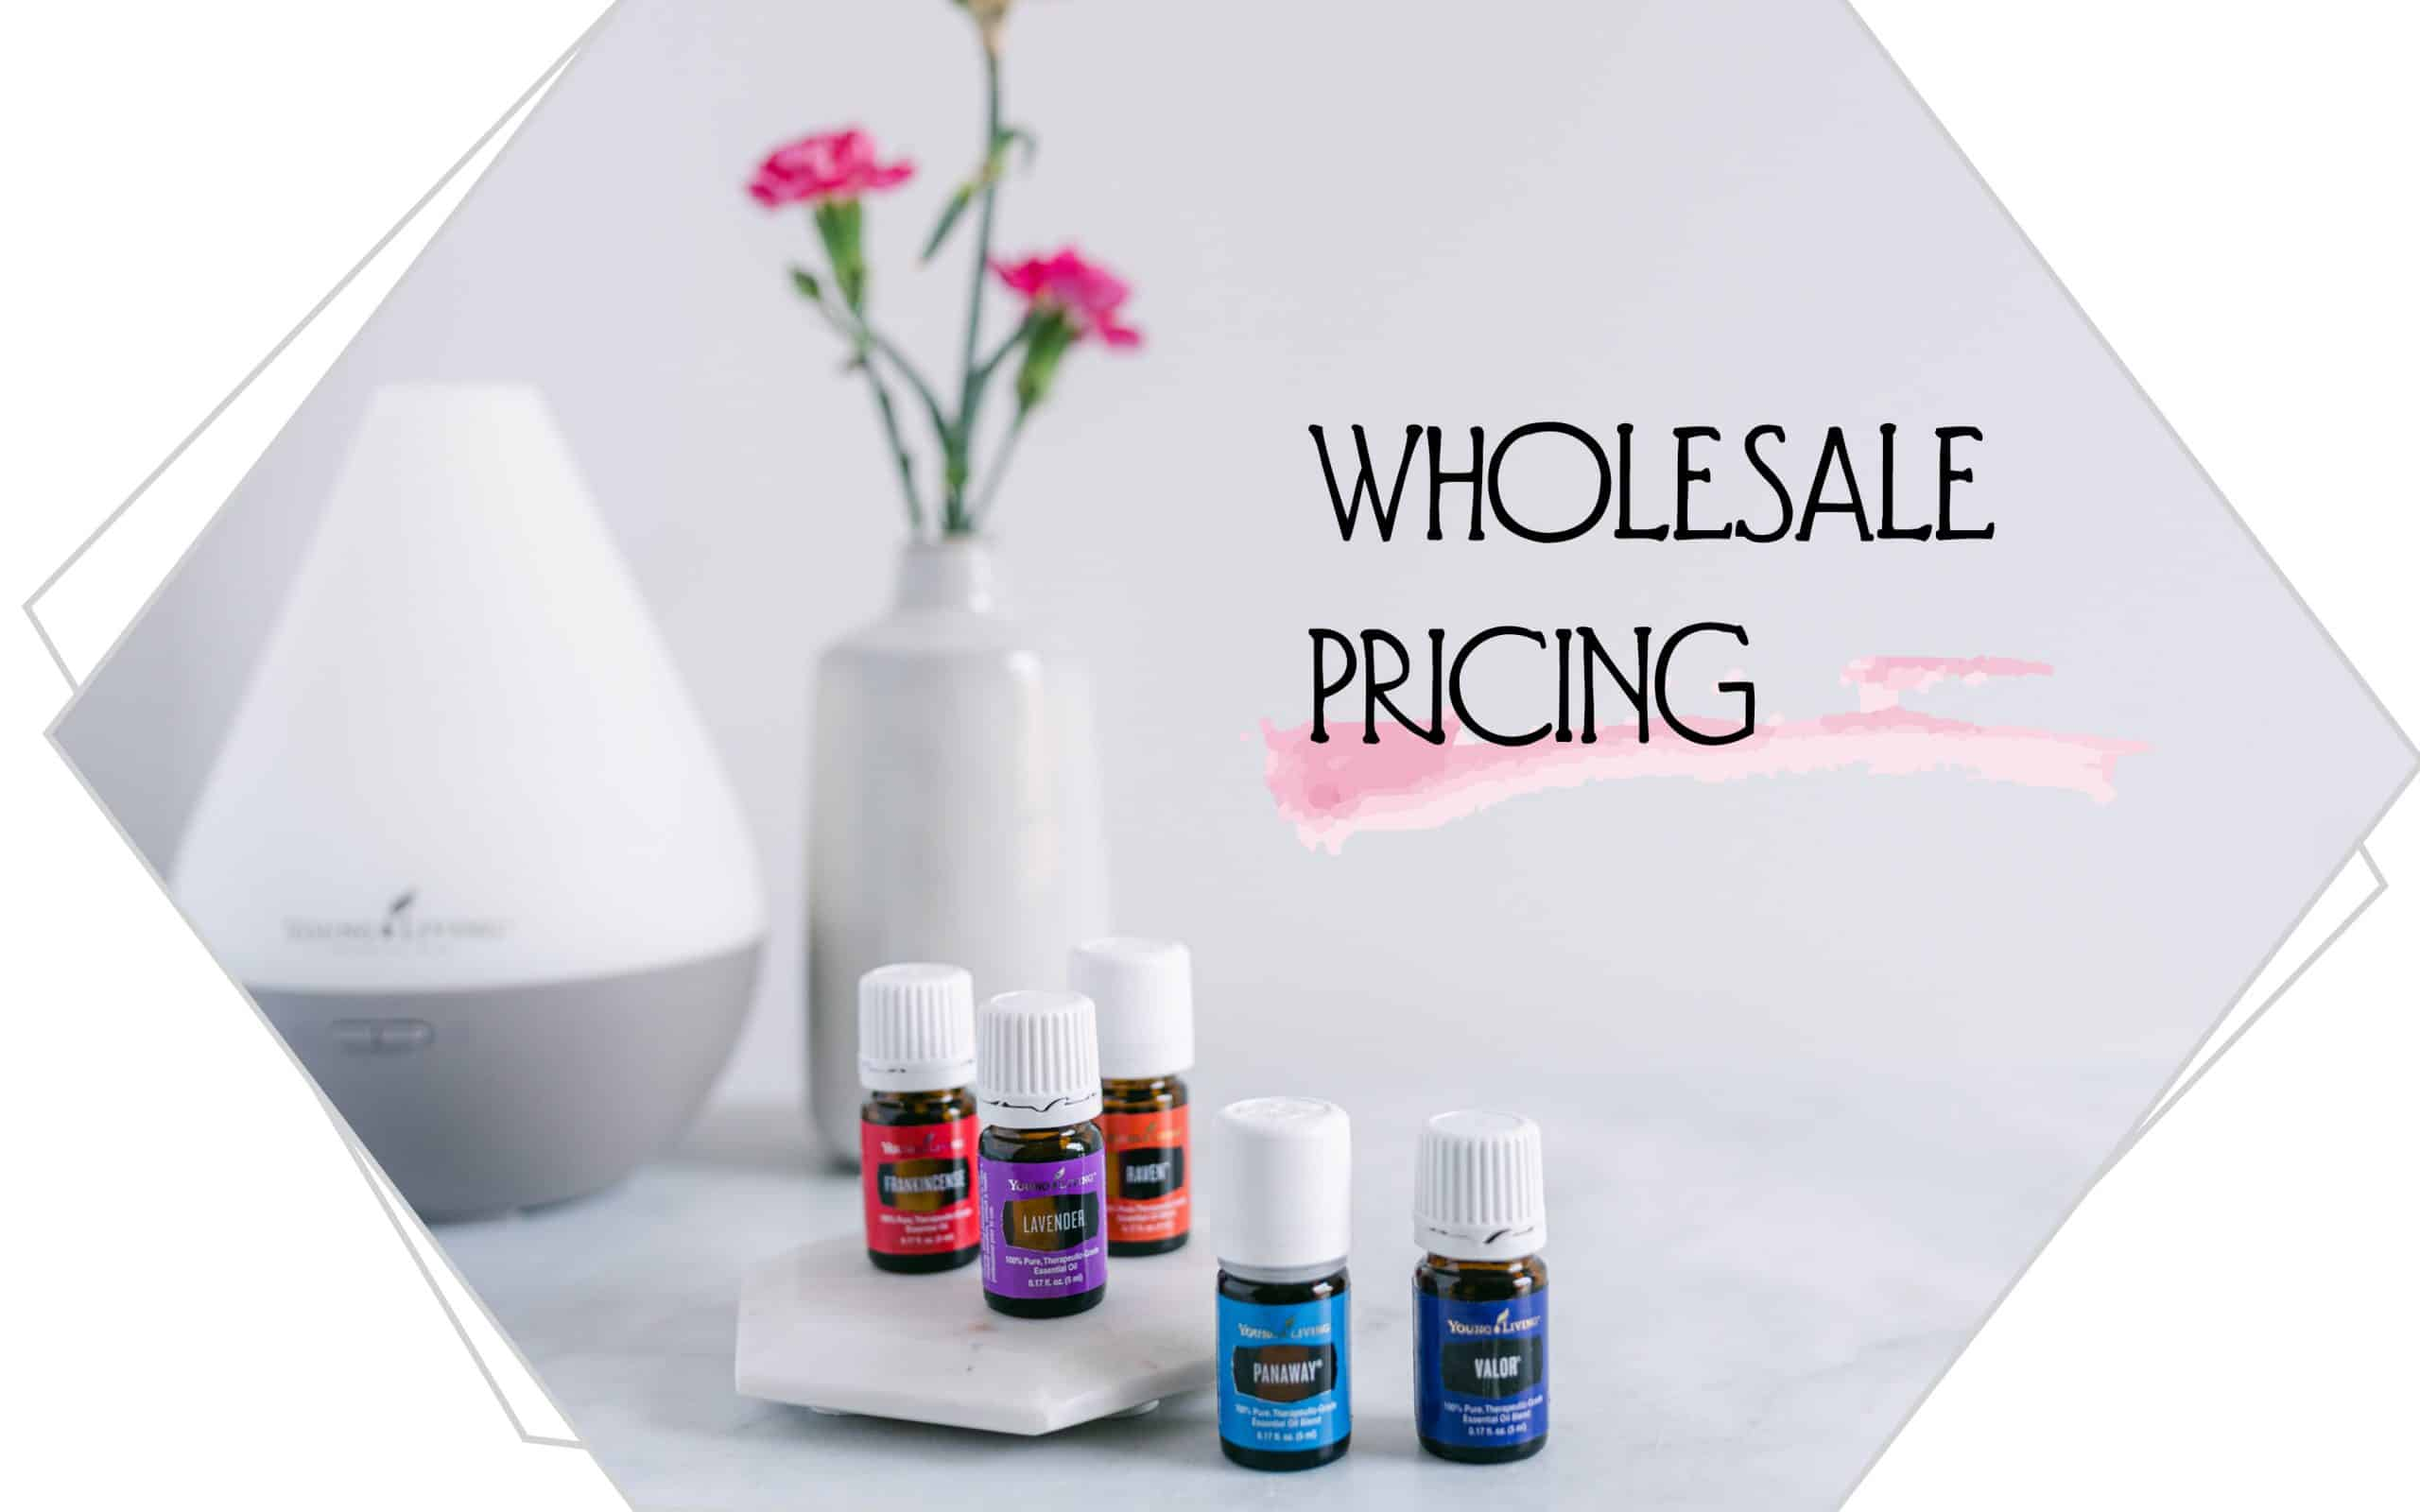 Wholesale Pricing with essential oils , a diffuser, and a vase of pink carnations.